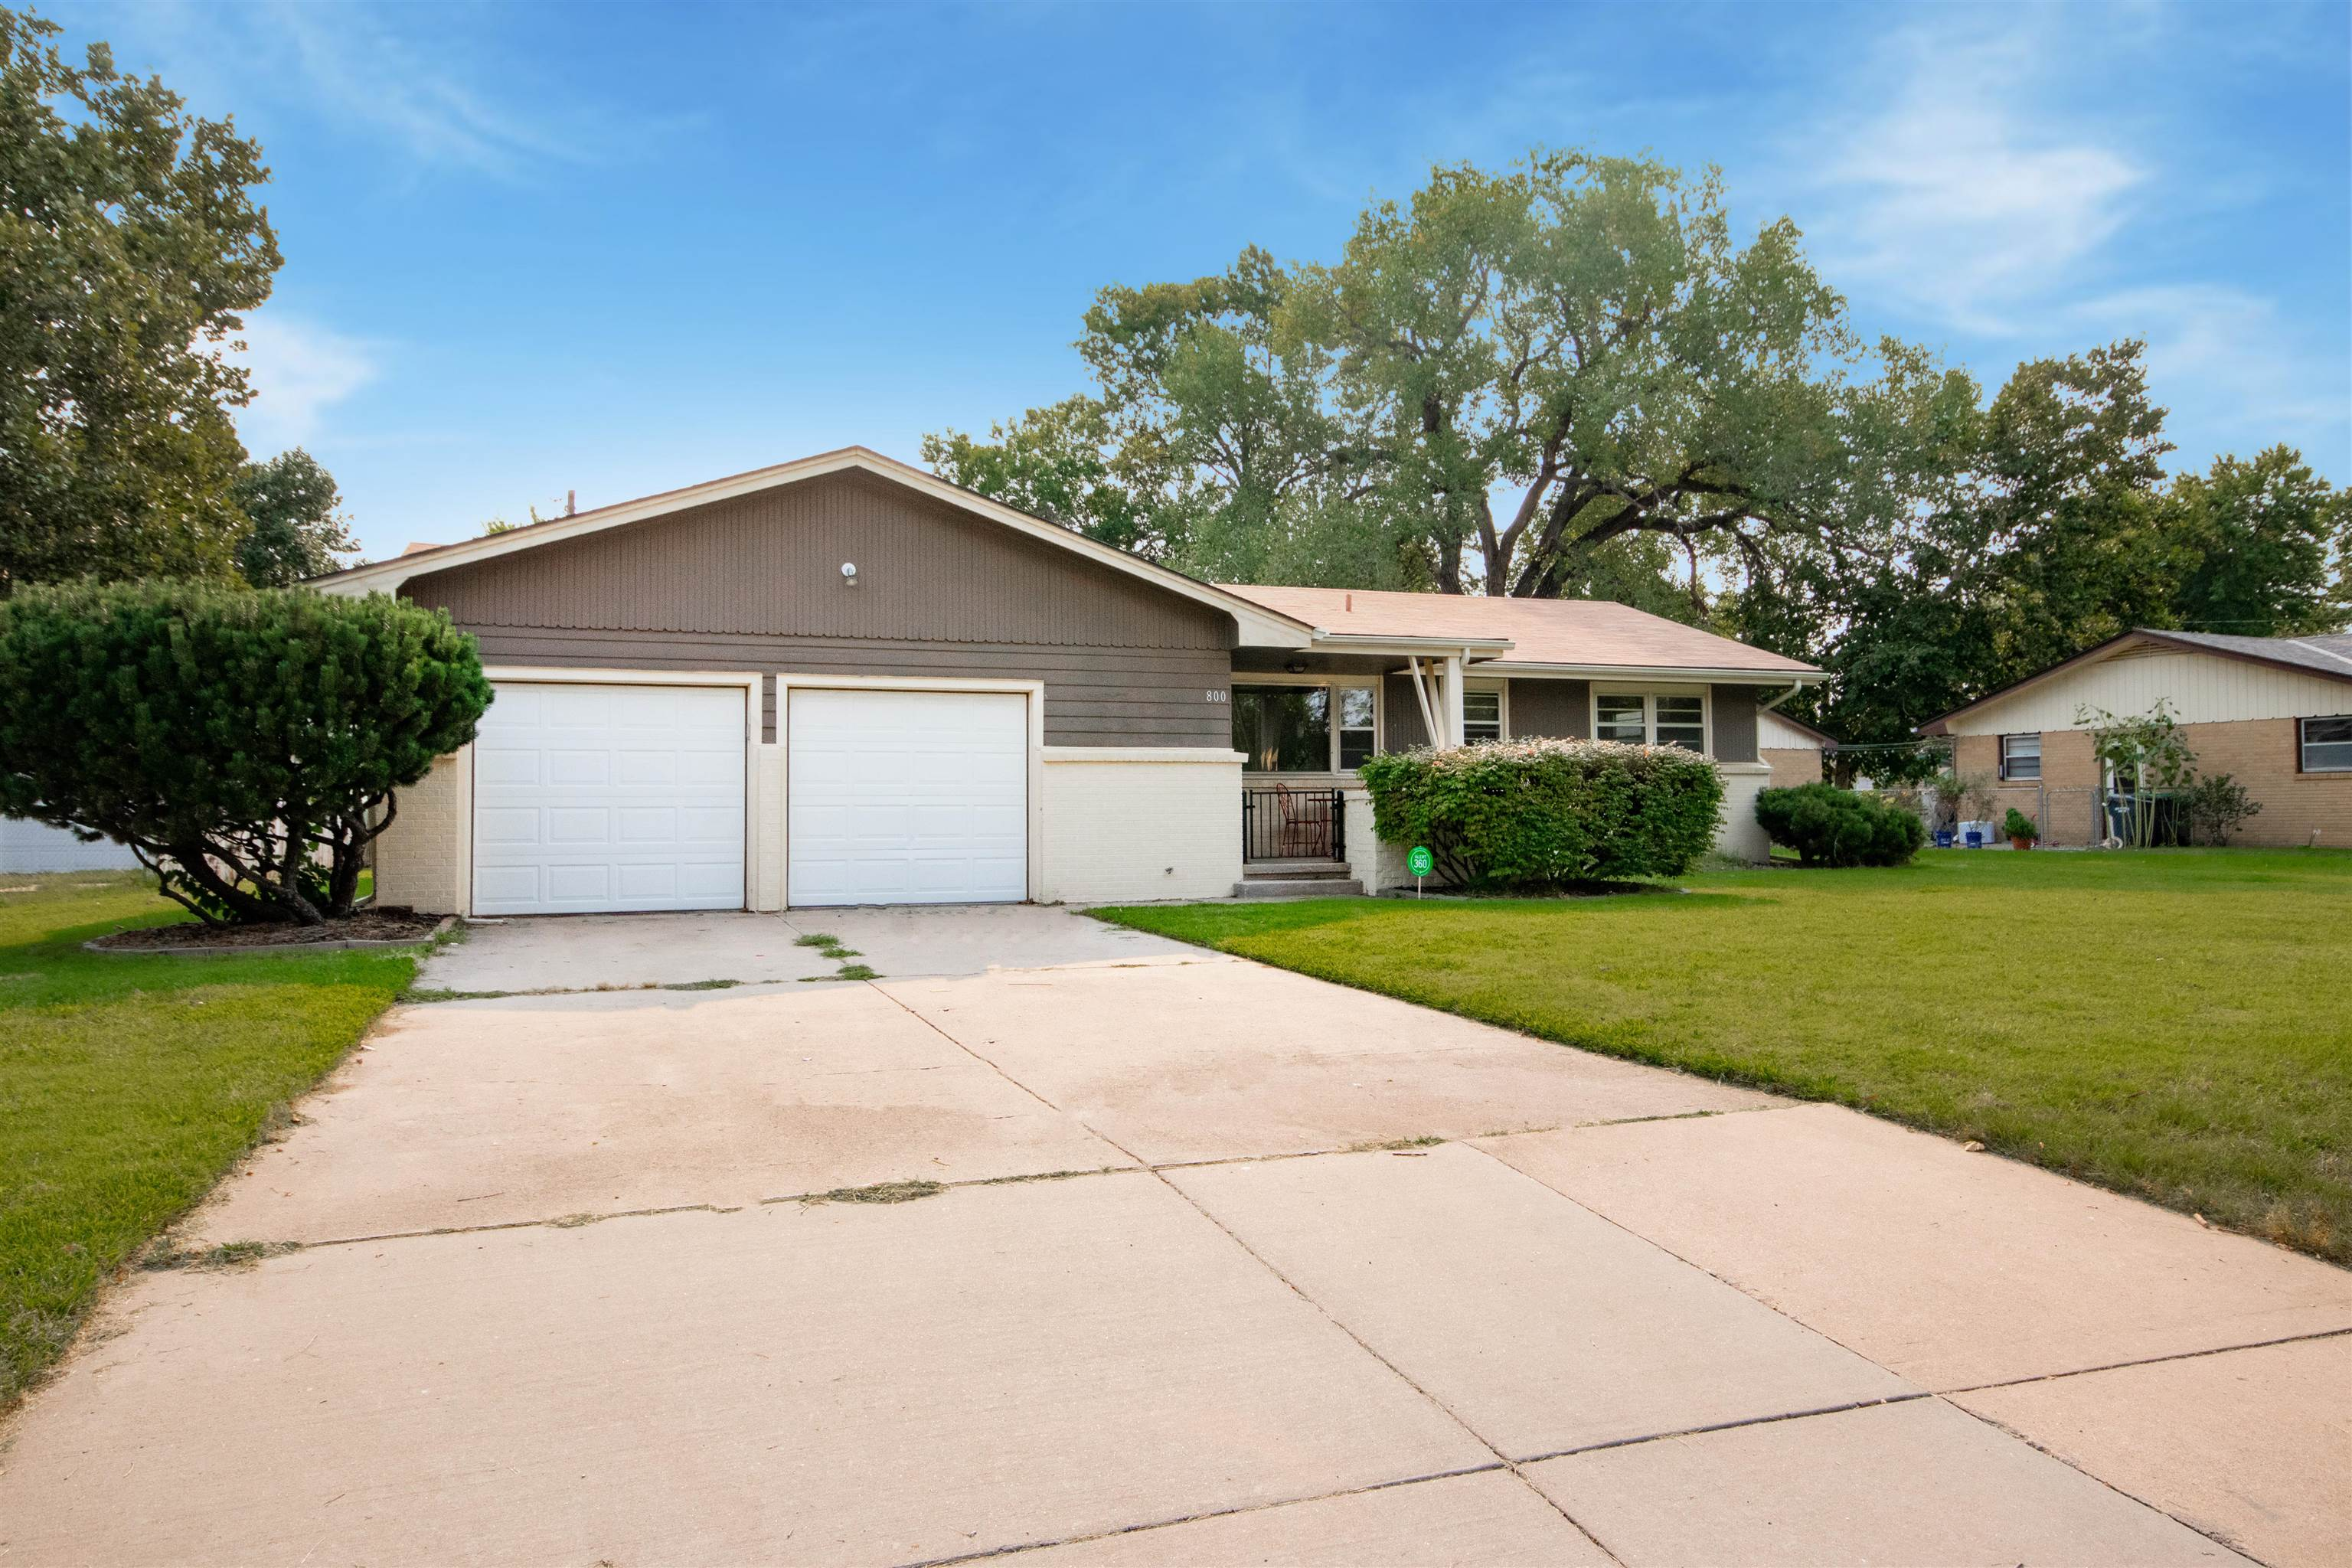 Well appointed mid-century ranch boasting over 1700 square feet on the main floor with more potentia